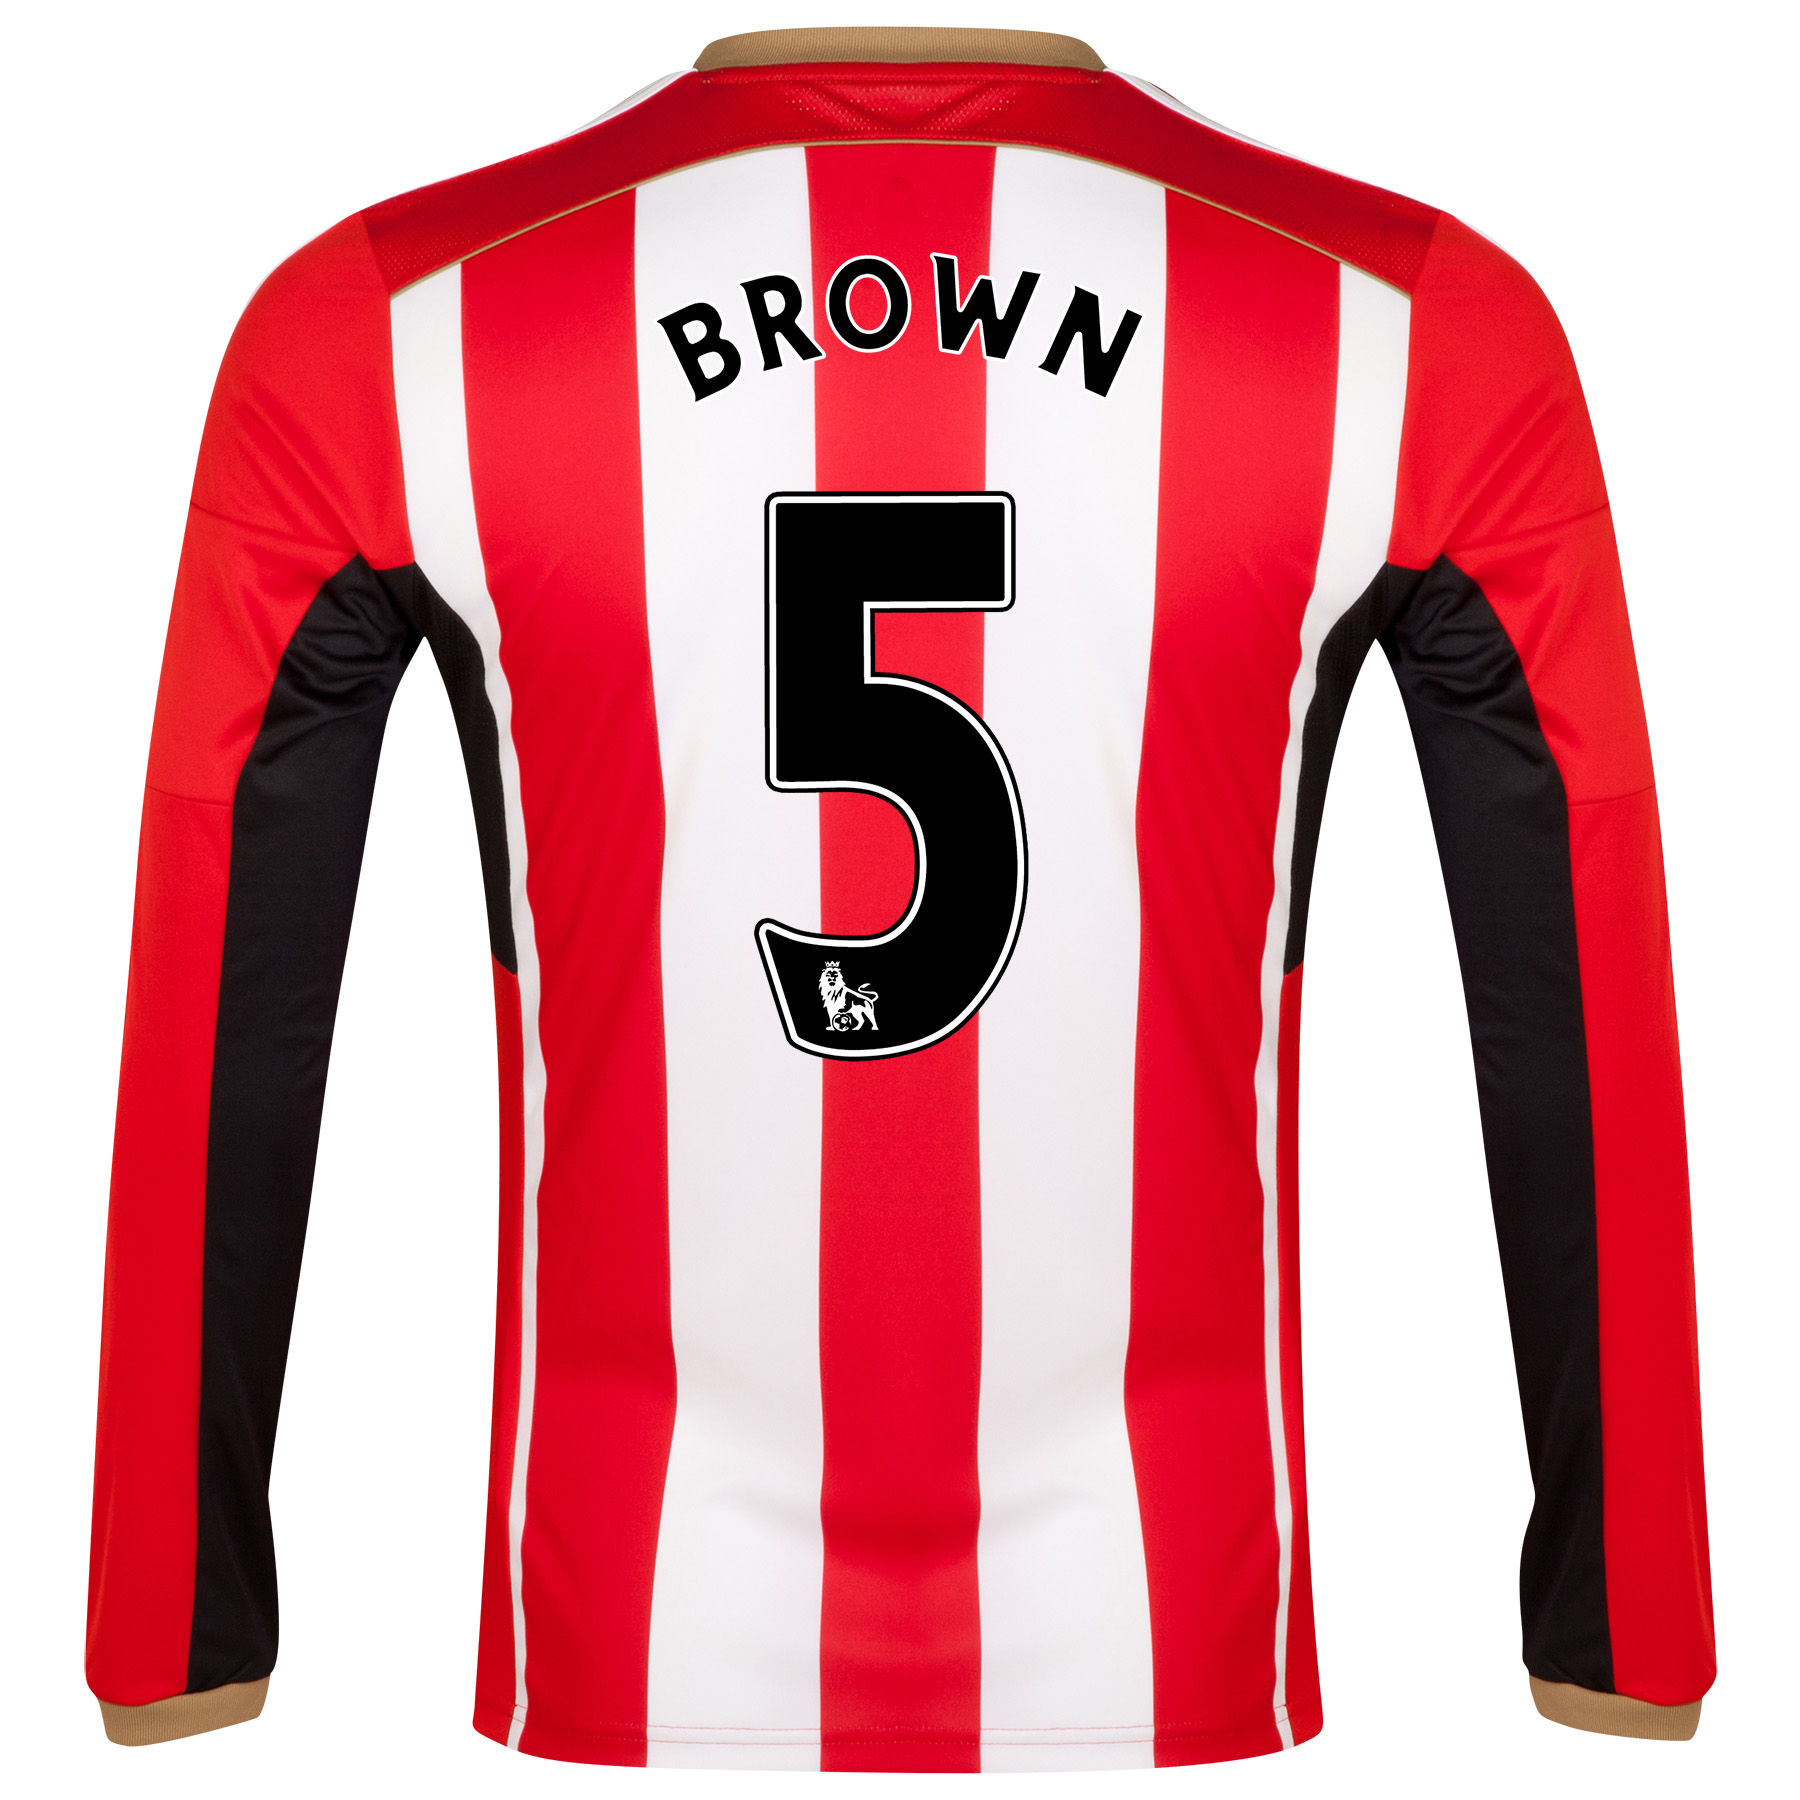 Sunderland Home Shirt 2014/15 - Long Sleeved Red with Brown 5 printing